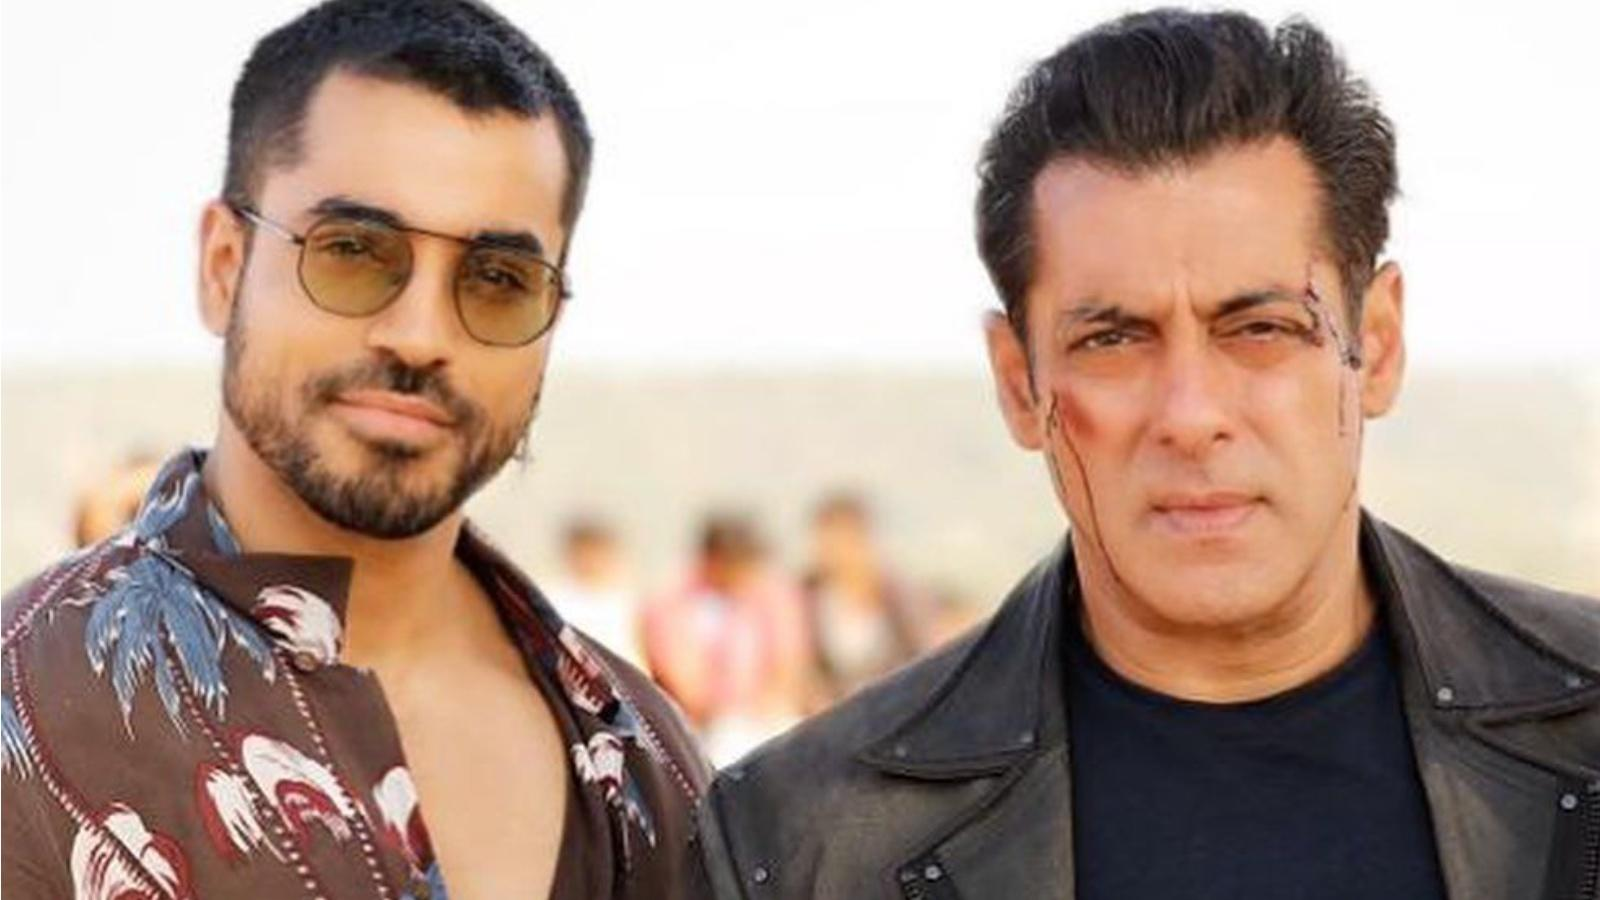 gautam-gulati-reveals-he-accidentally-hit-salman-khan-during-a-fight-scene-in-radhe-and-this-is-what-happened-next